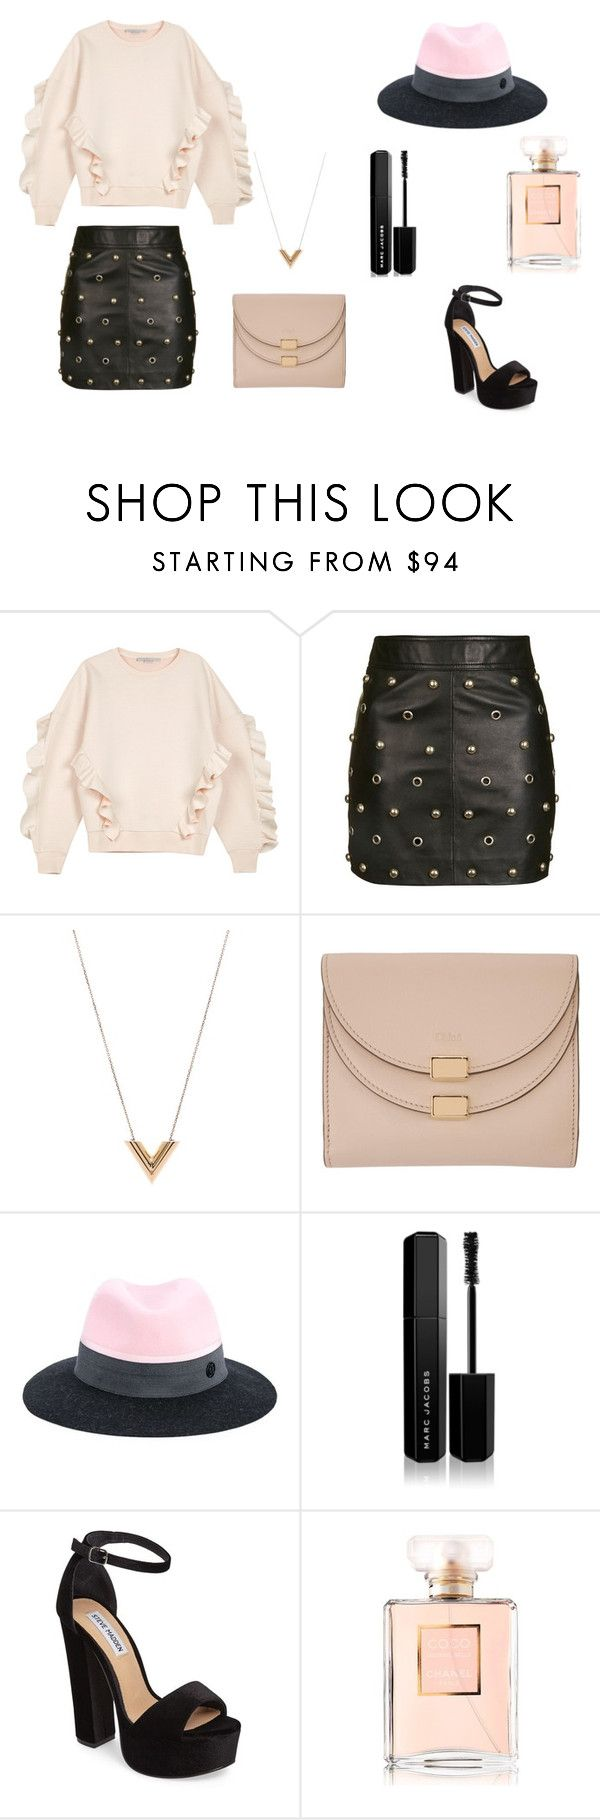 """""""Candy floss"""" by ustine on Polyvore featuring moda, STELLA McCARTNEY, Topshop, Louis Vuitton, Chloé, Maison Michel, Marc Jacobs, Steve Madden i Chanel"""